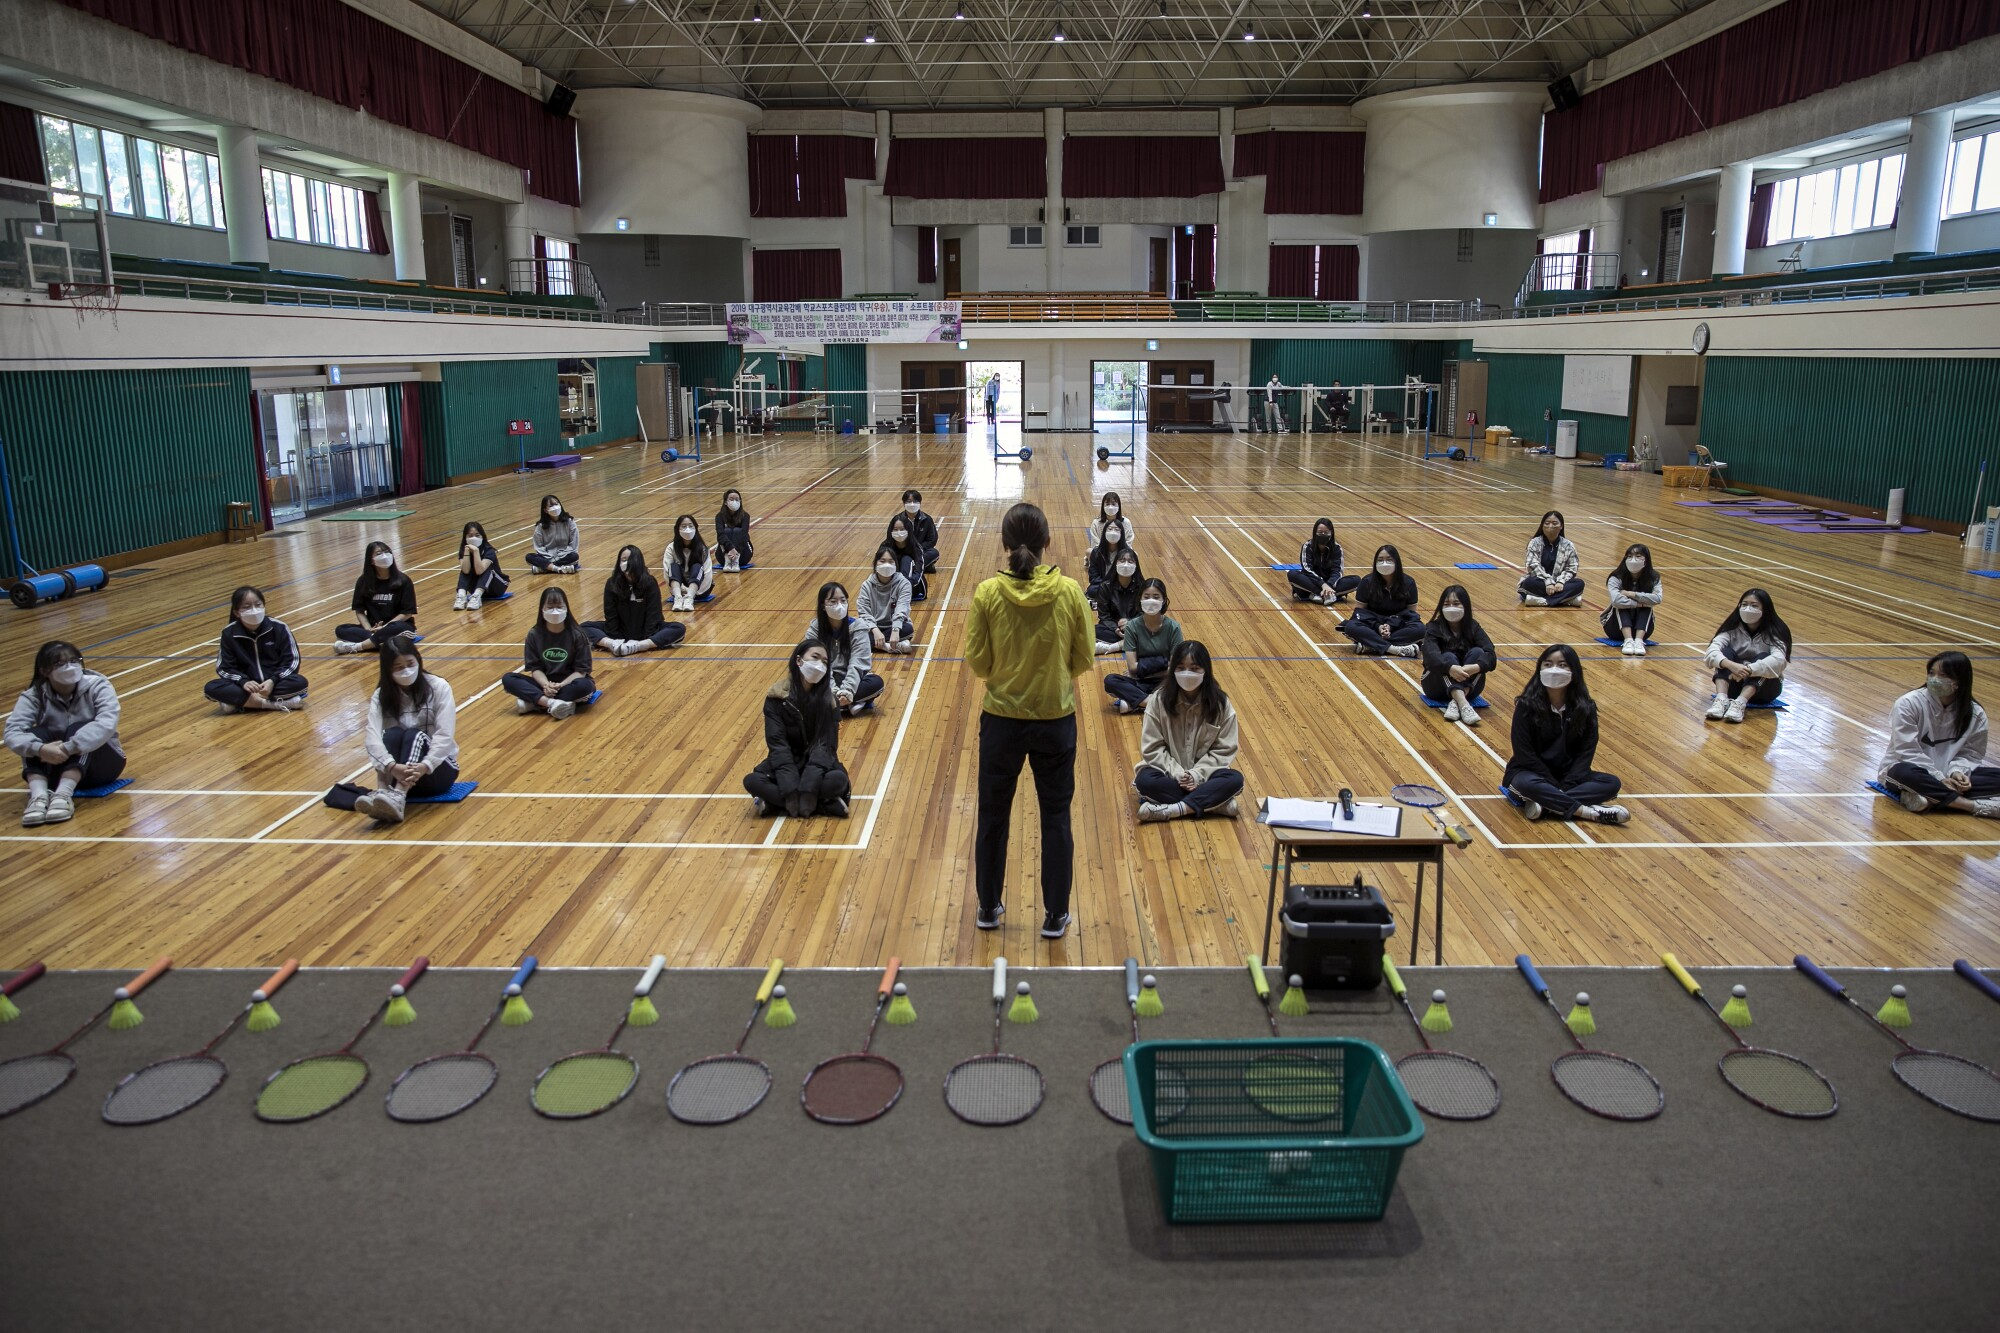 Students gear up for PE on May 20, 2020, their first day back at Gyungbuk Girls' High School in Daegu, South Korea, after a lengthy closure due to the COVID-19 pandemic. Daegu was at the center of South Korea's coronavirus outbreak.